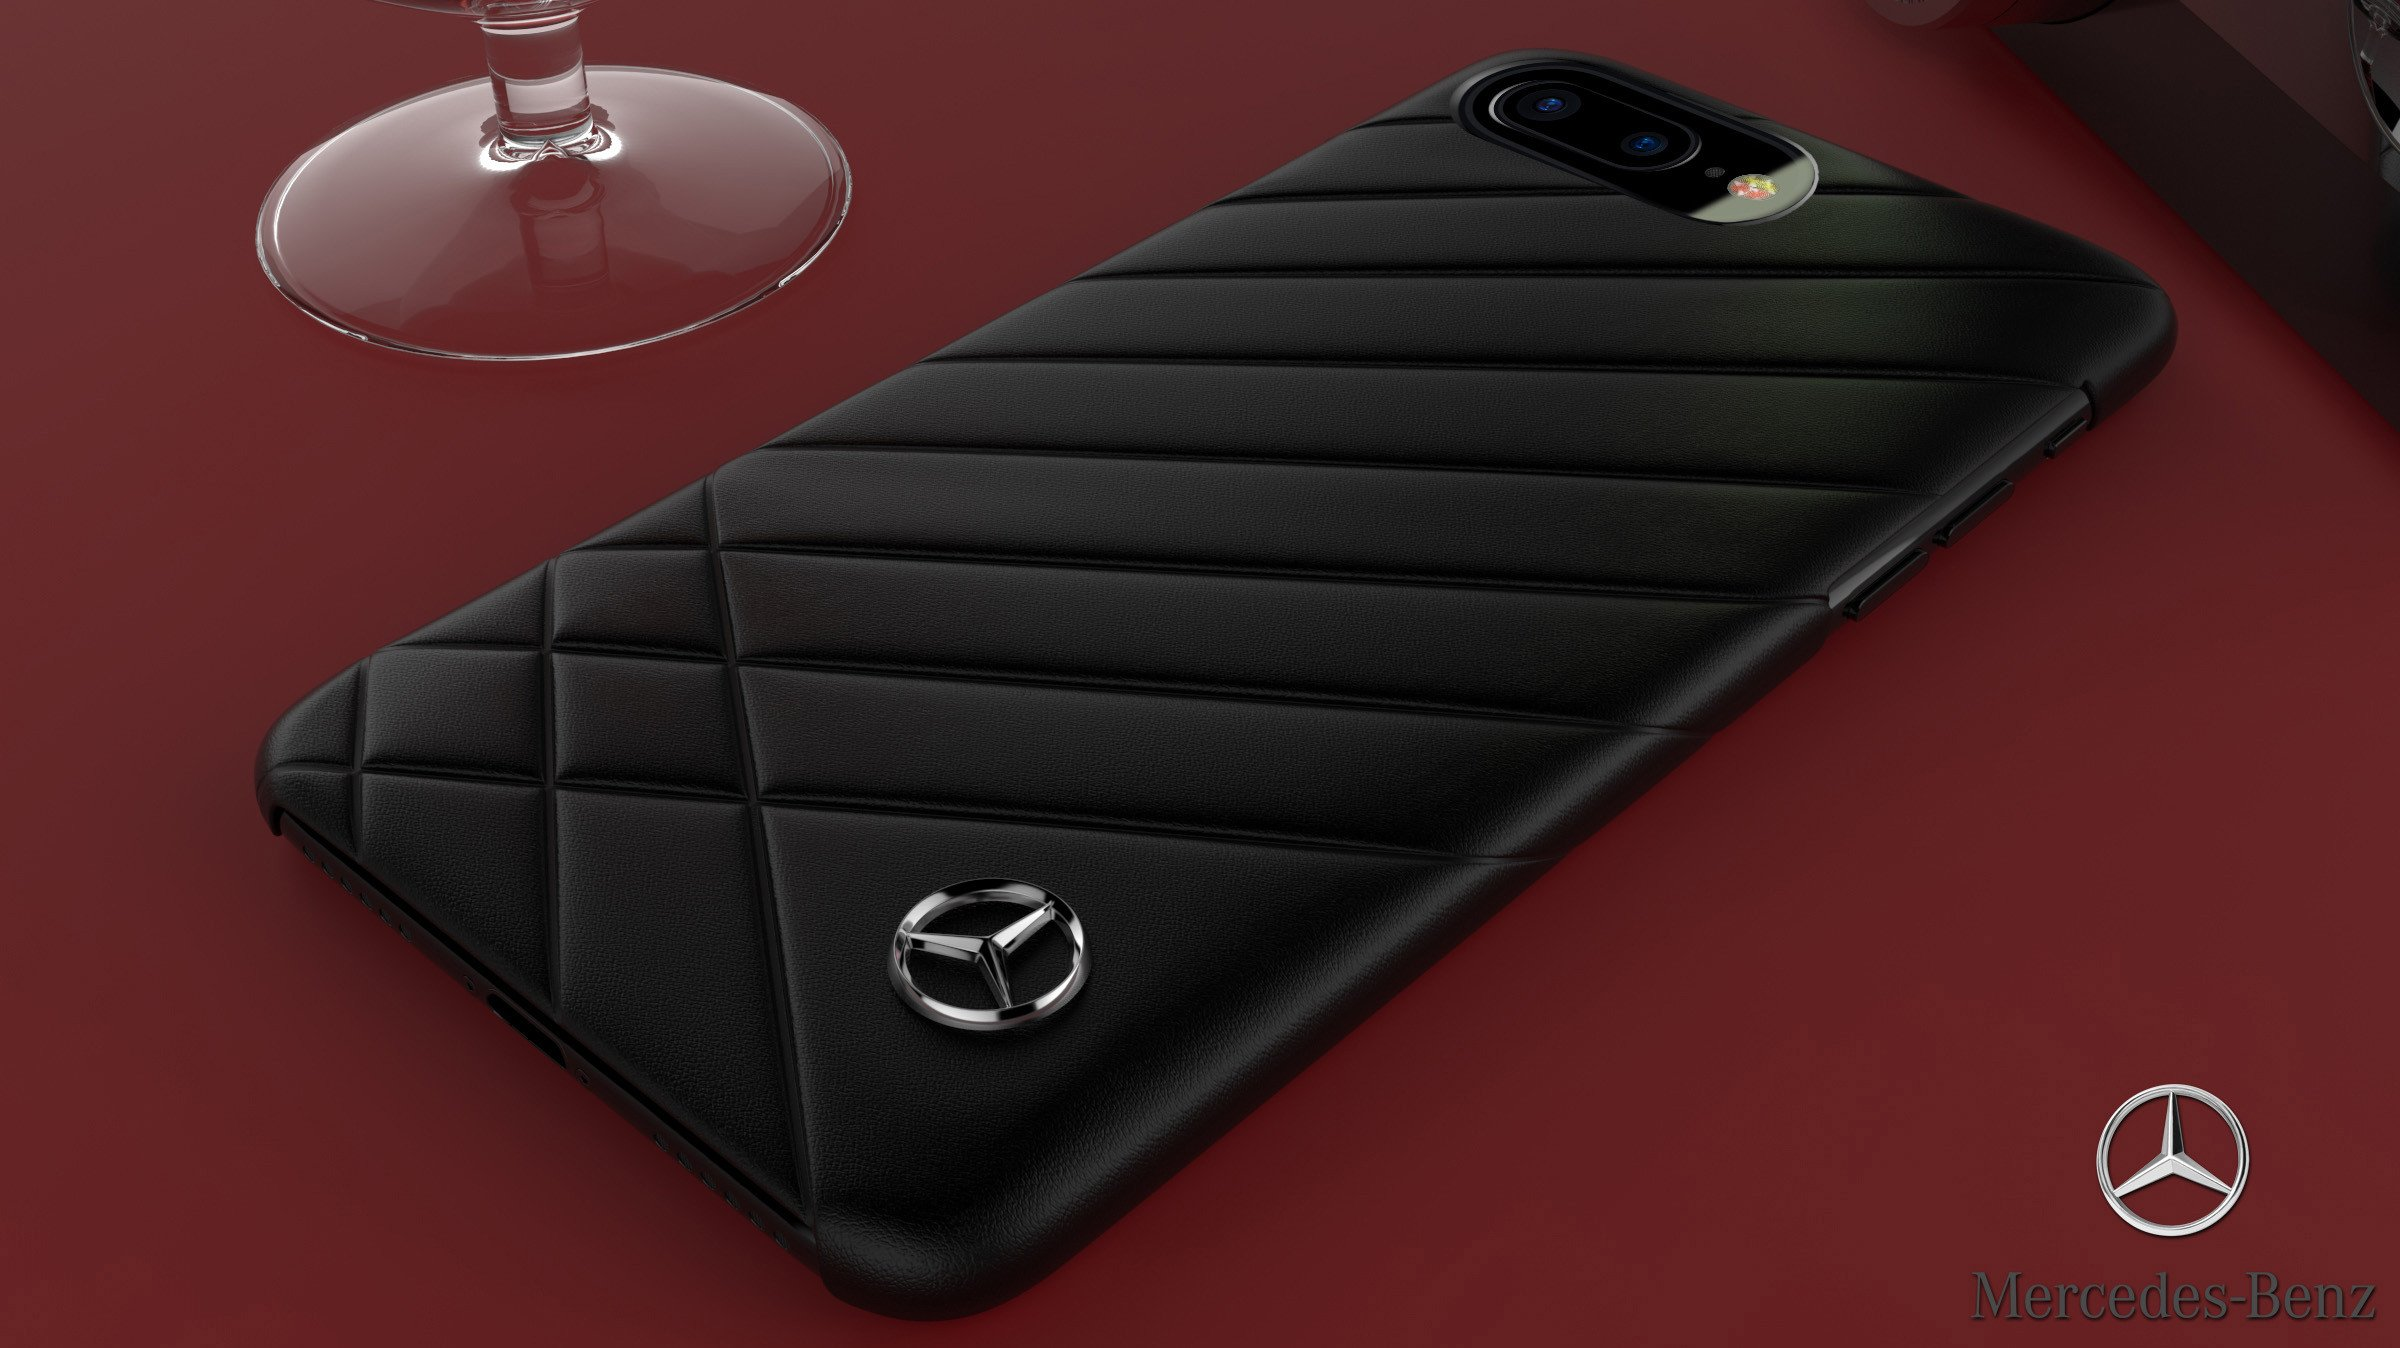 iphone 8 plus case mercedes